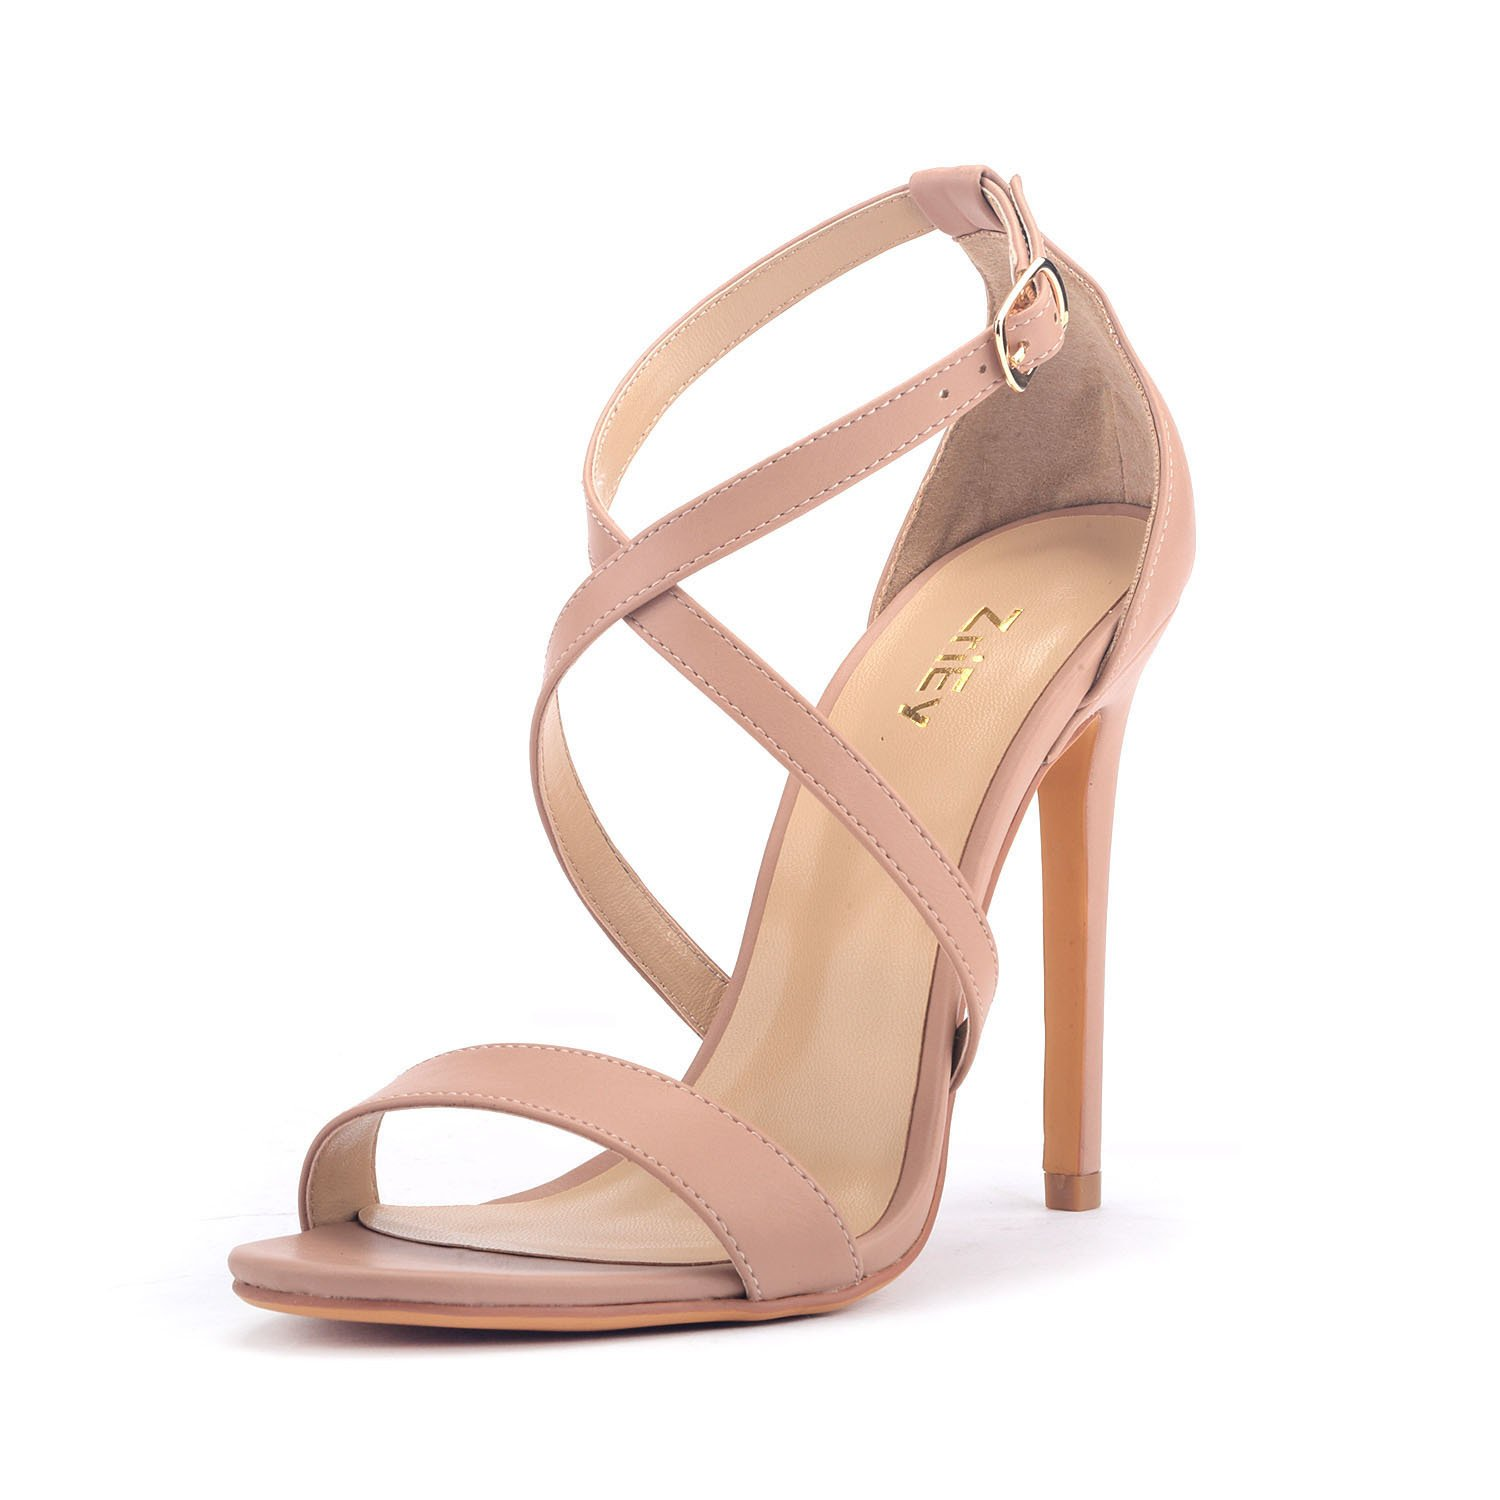 ZriEy Women Stiletto Sandals Cross Strappy High Heels 11CM Open Toe Bridal Wedding Party Shoes Nude Size 7